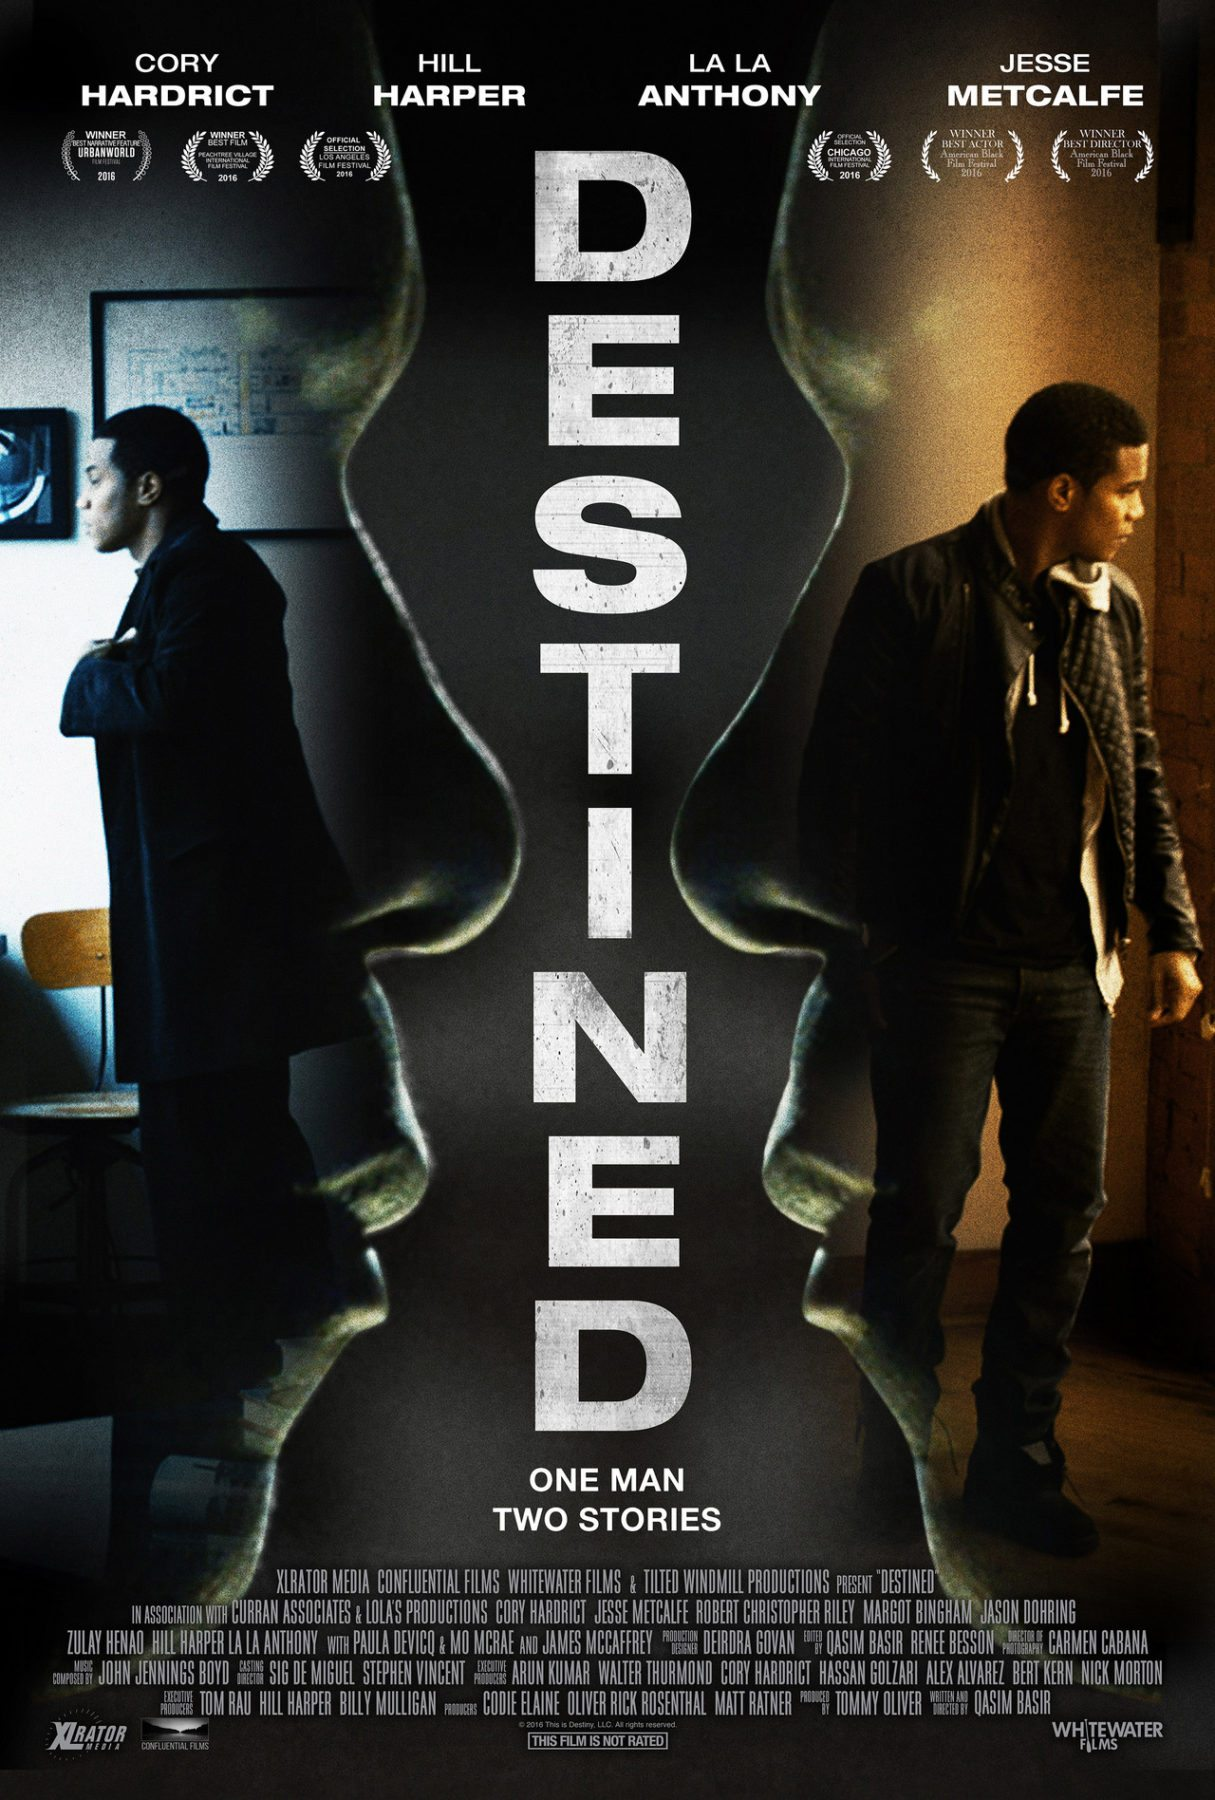 Watch the trailer for Destined starring Cory Hardrict